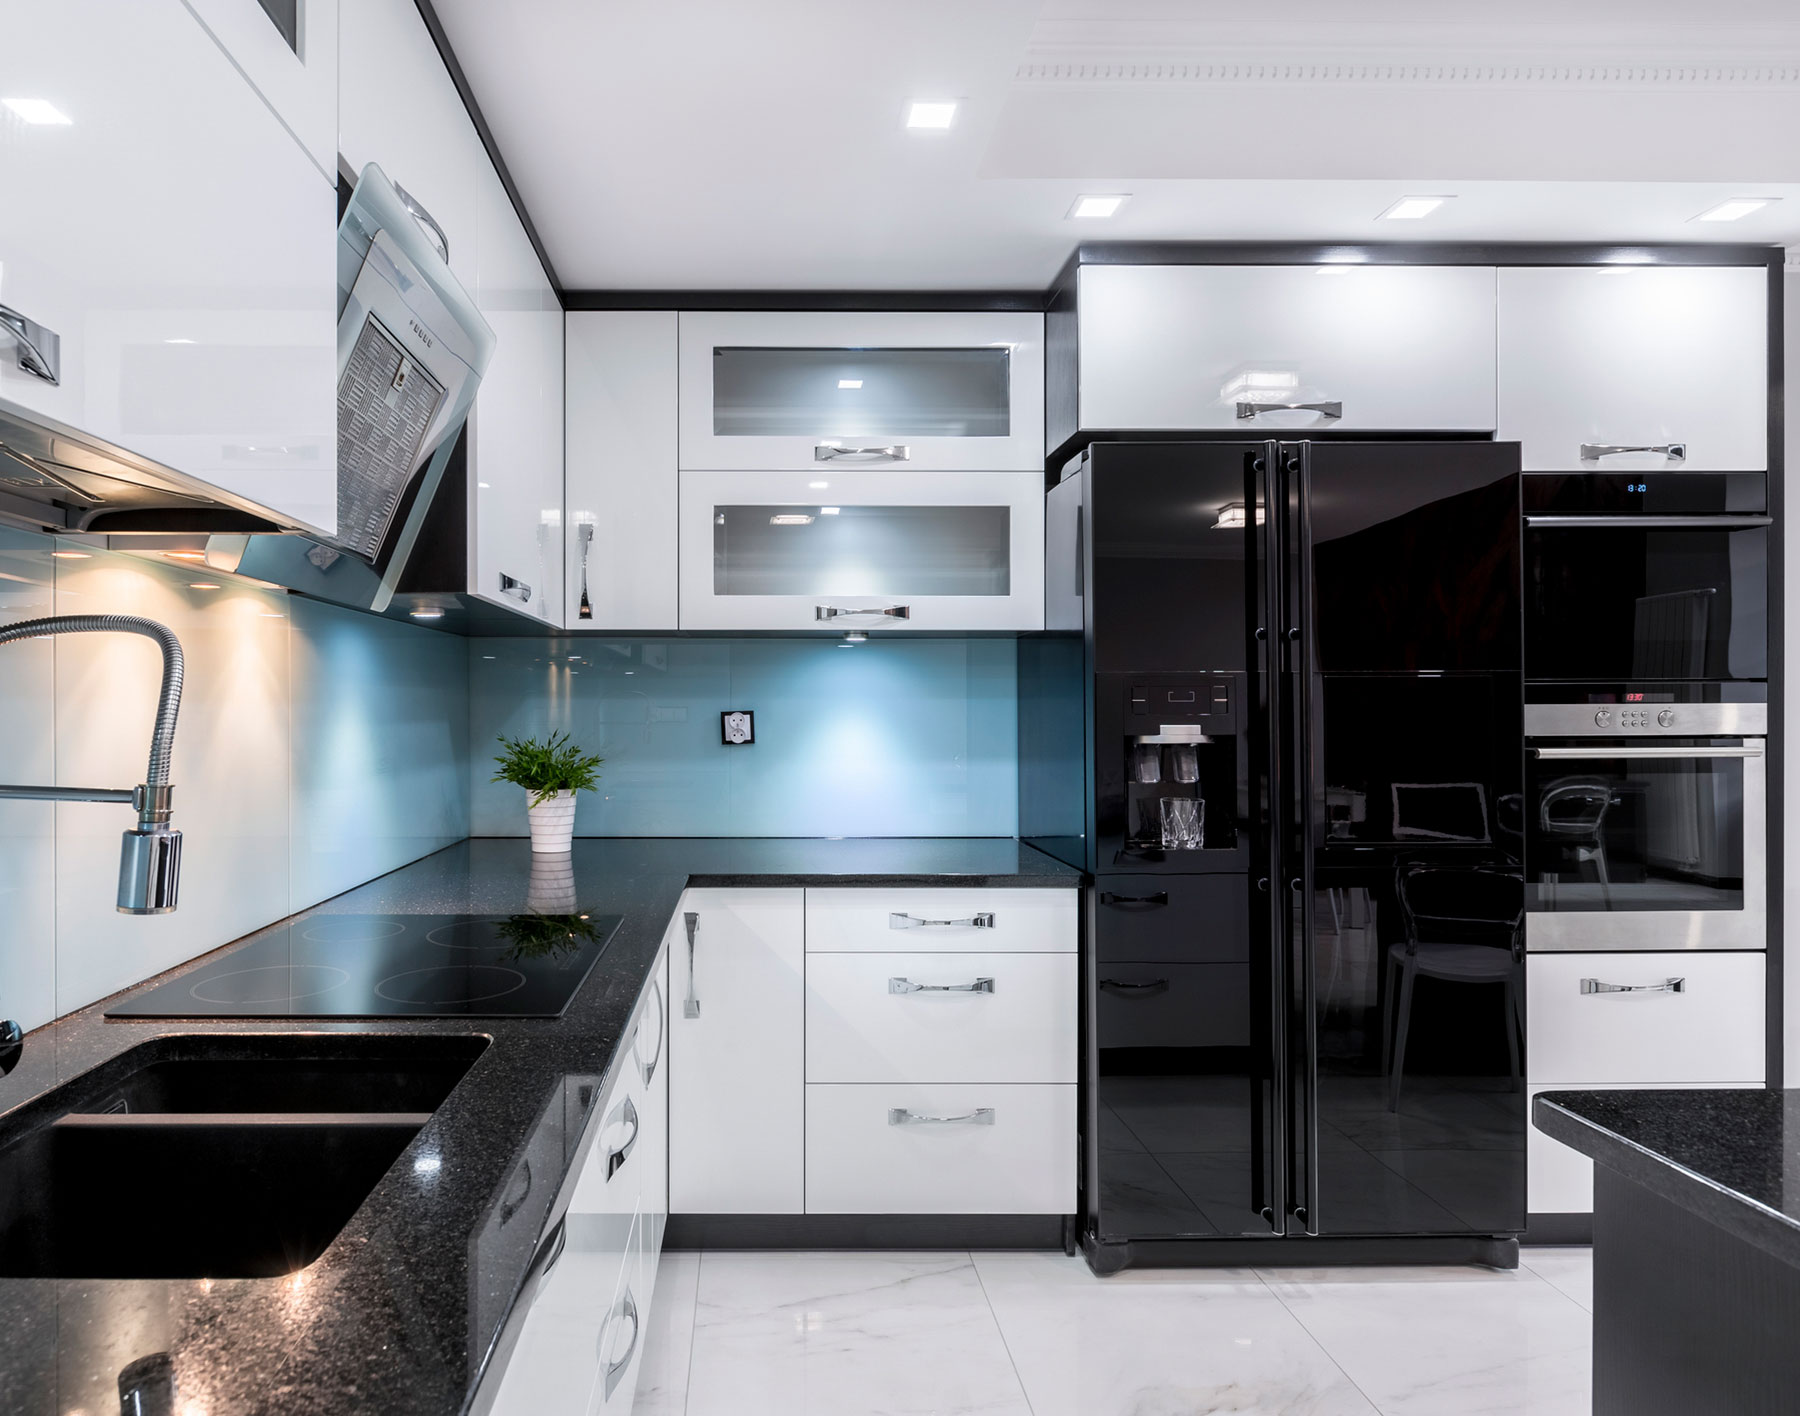 Kitchen with black stainless steel appliances